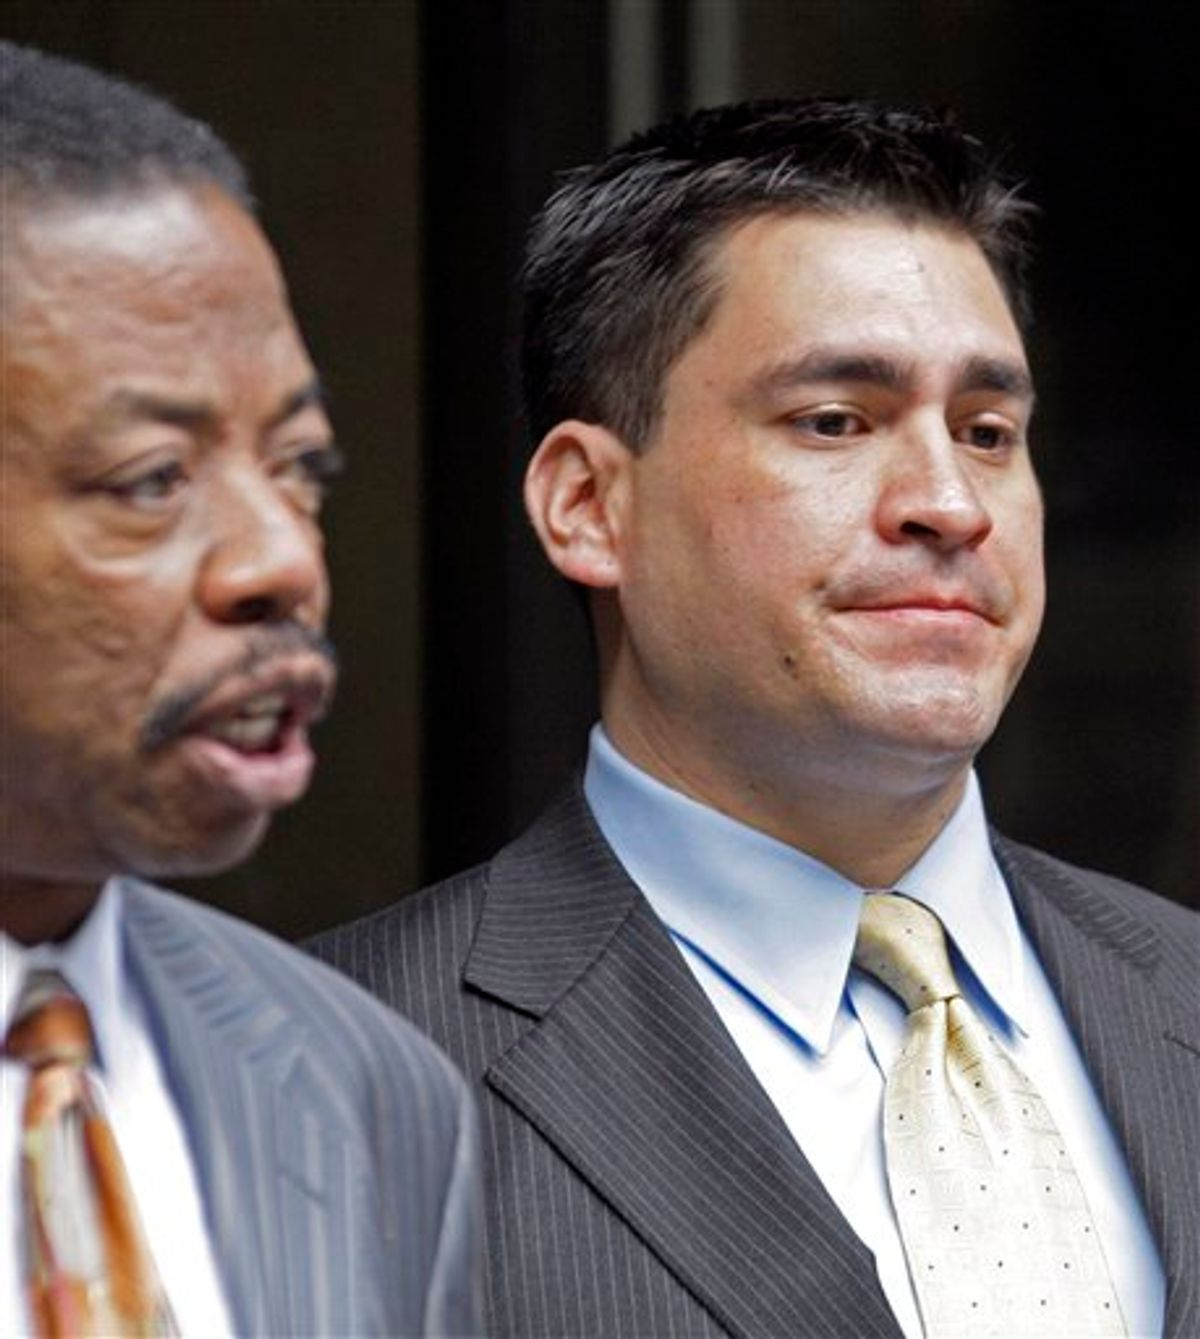 Security guard Alberto Alvarez, right, listens as his attorney Carl Douglas talks to reporters as they leave the preliminary hearing for Michael Jackson's doctor Conrad Murray who is charged in the death of the singer, at Los Angeles Superior Court, Wednesday, Jan. 5, 2011.  (AP Photo/Reed Saxon) (AP)